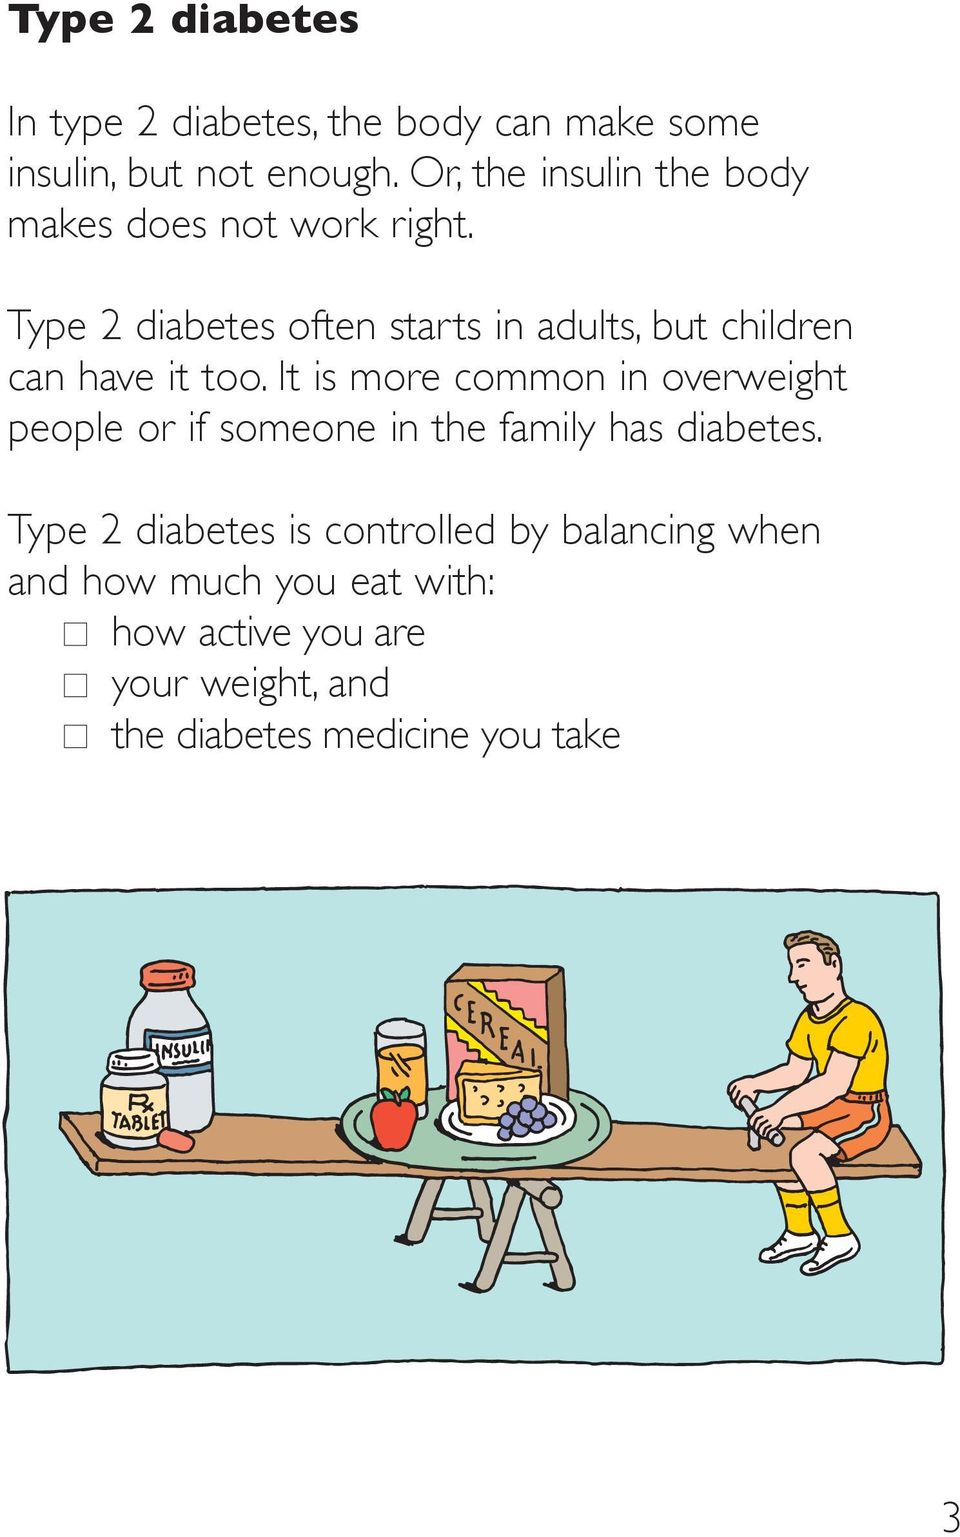 Type 2 diabetes often starts in adults, but children can have it too.